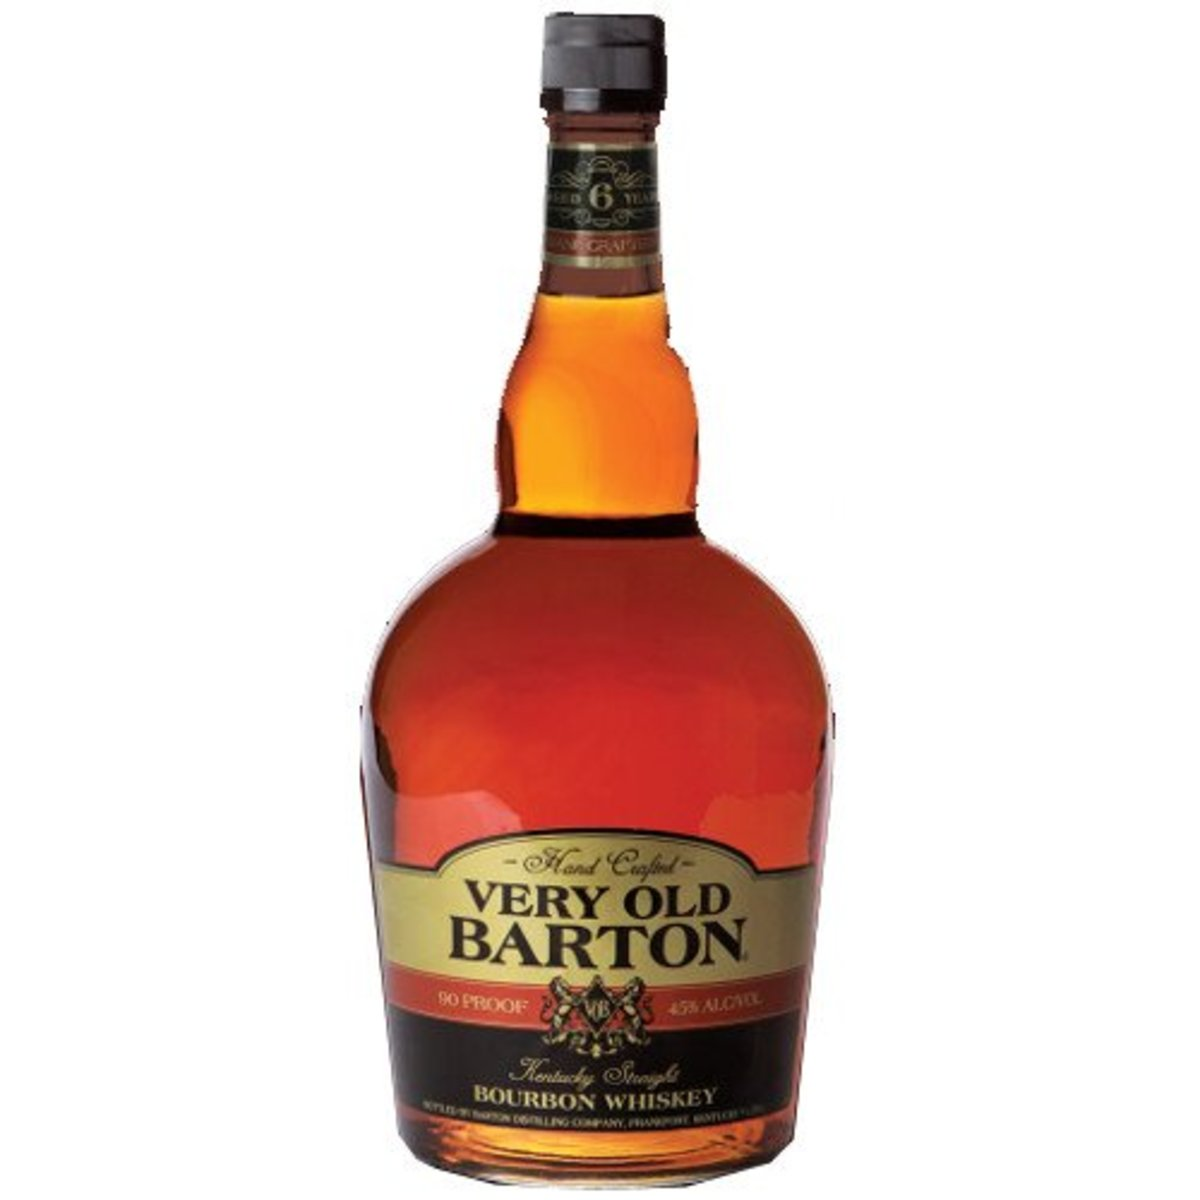 The best thing about Very Old Barton 80-proof, apart from the exceptionally affordable price, is the silky smooth sugary taste.